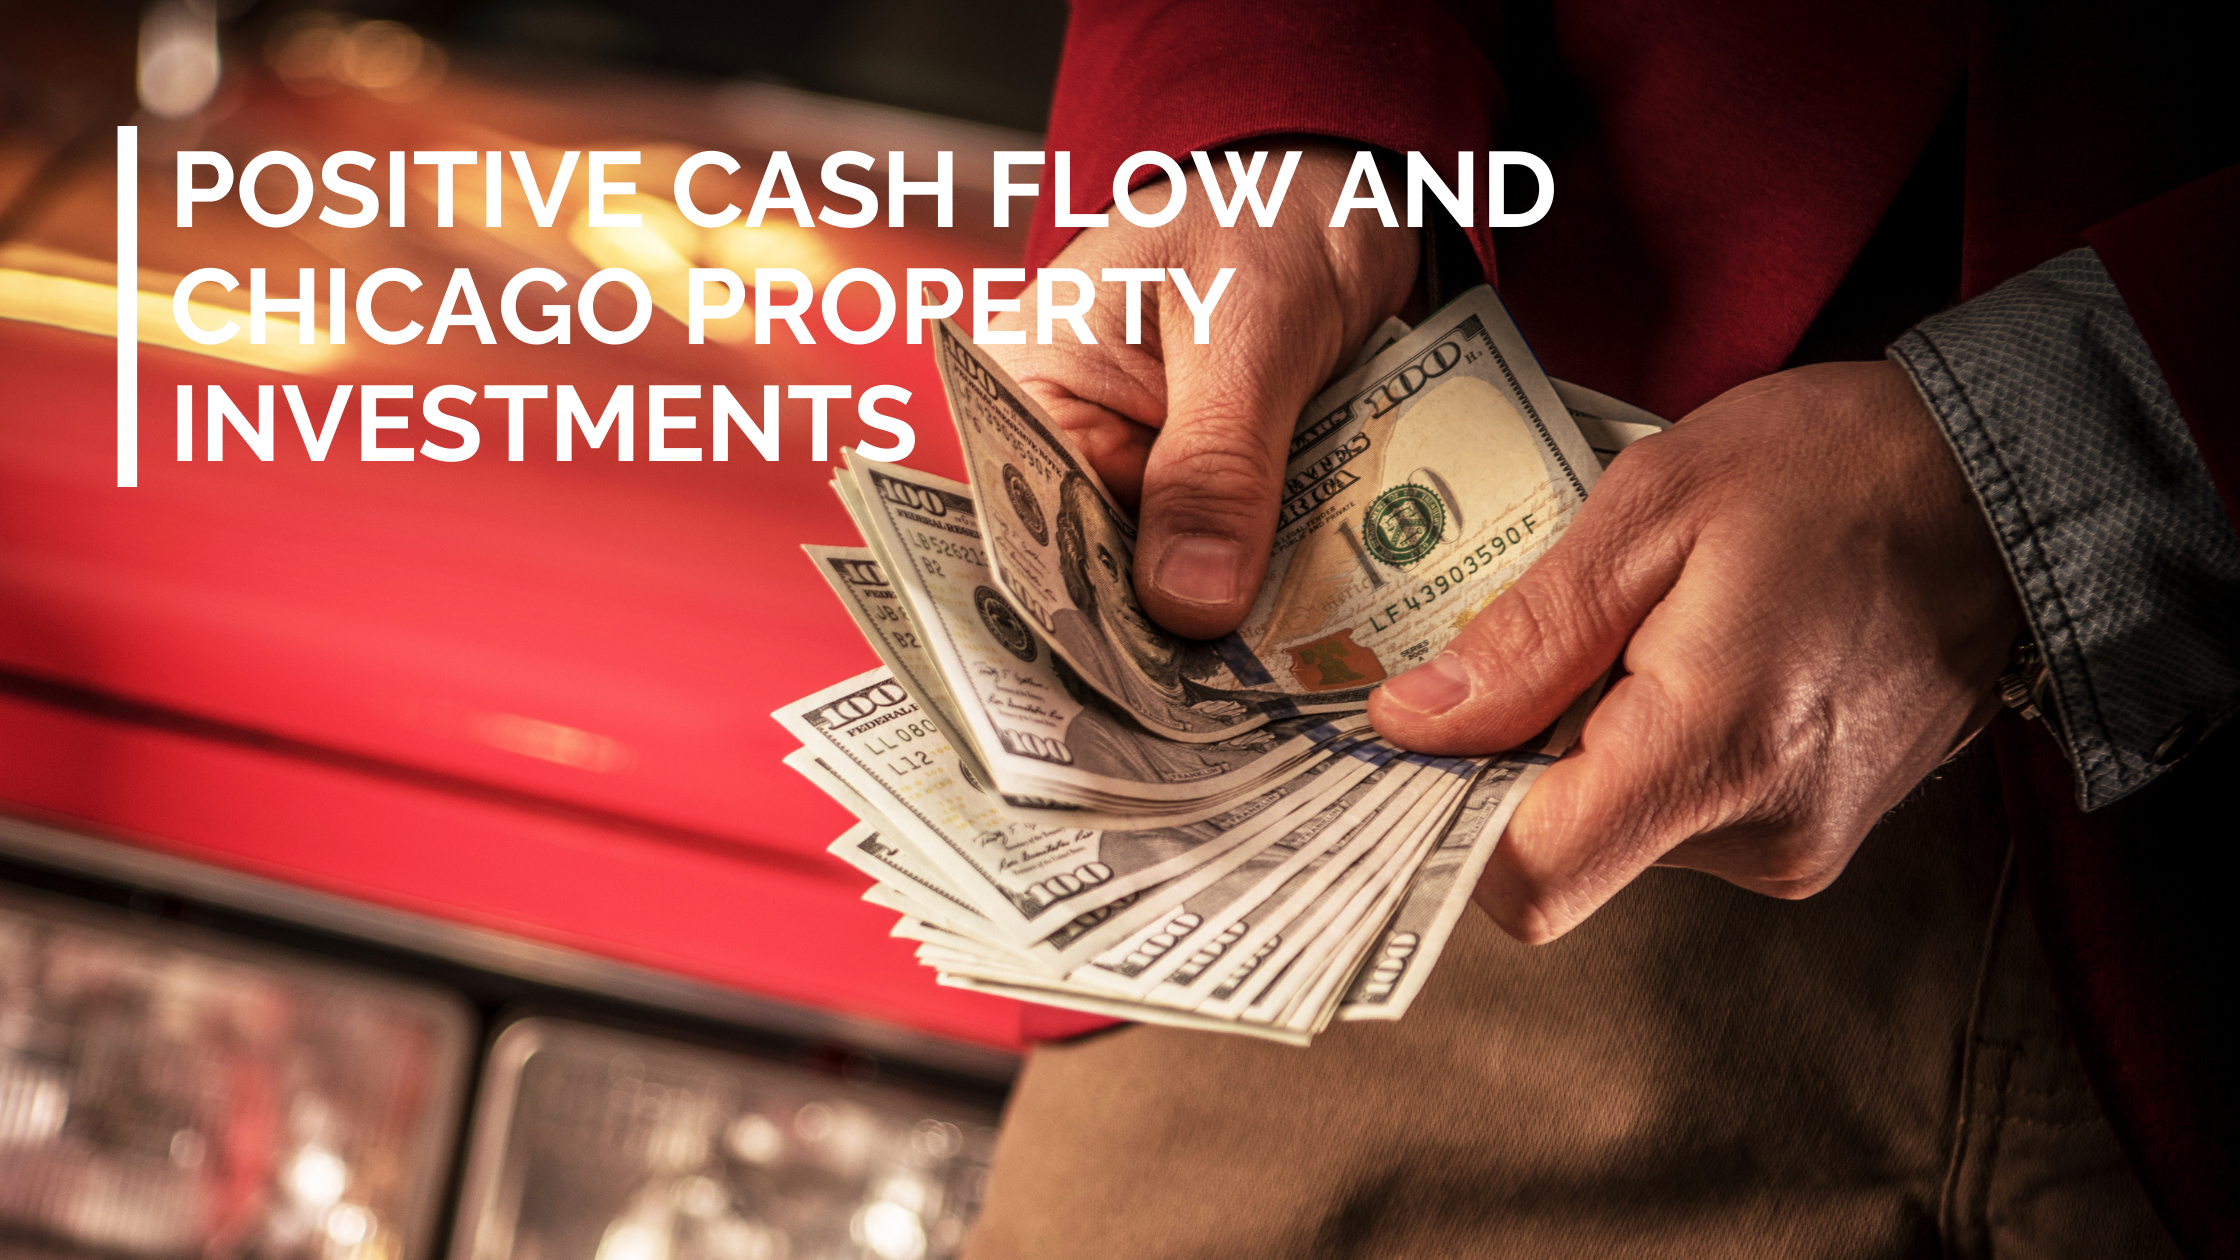 Positive Cash Flow and Chicago Property Investments